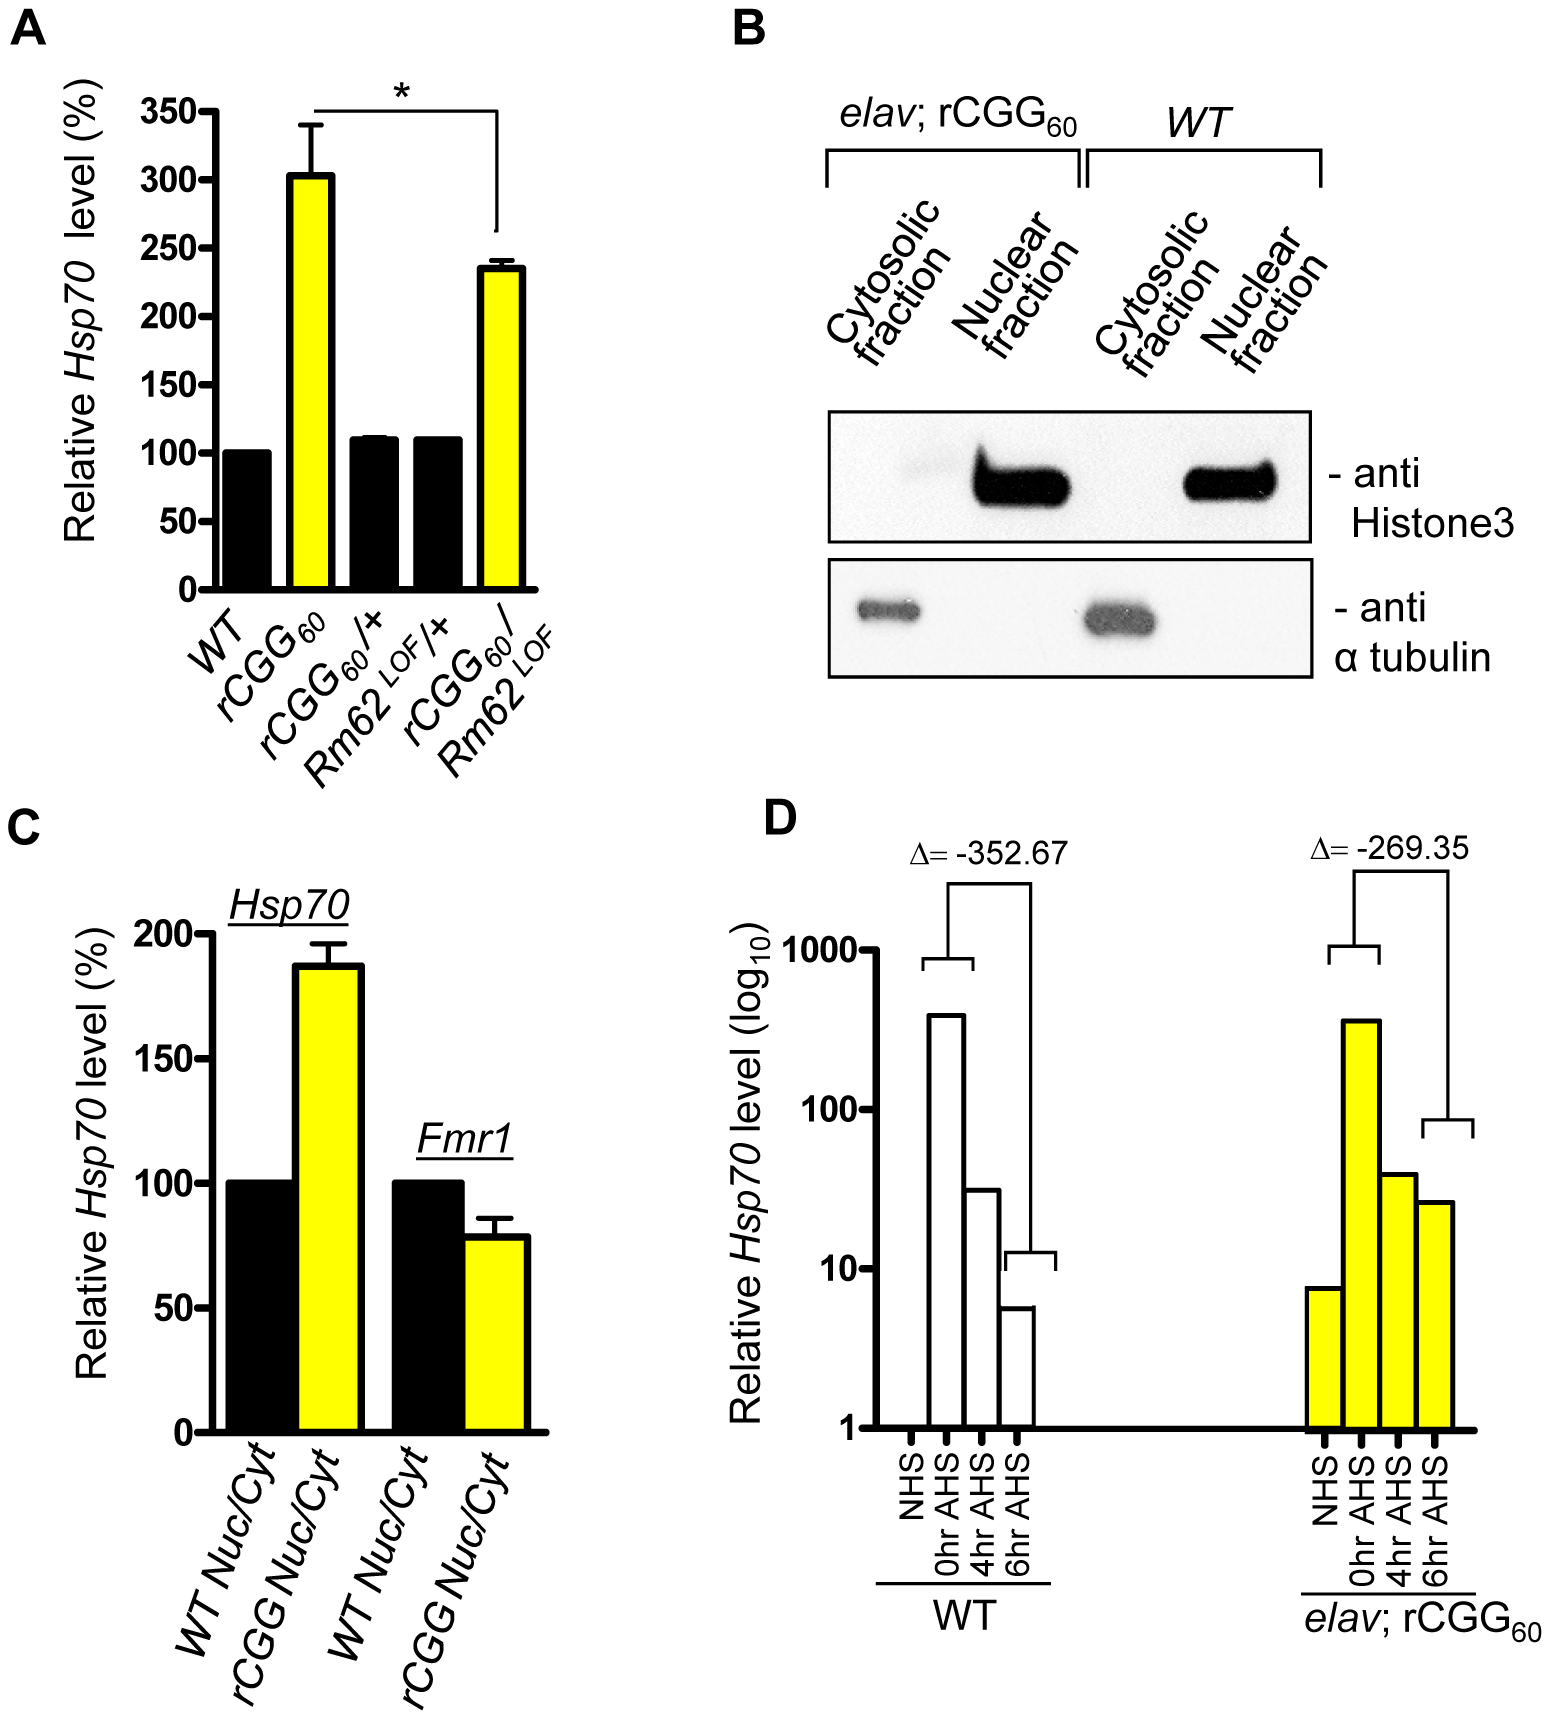 Fragile X premutation rCGG repeats cause the nuclear accumulation of Hsp70 mRNA.